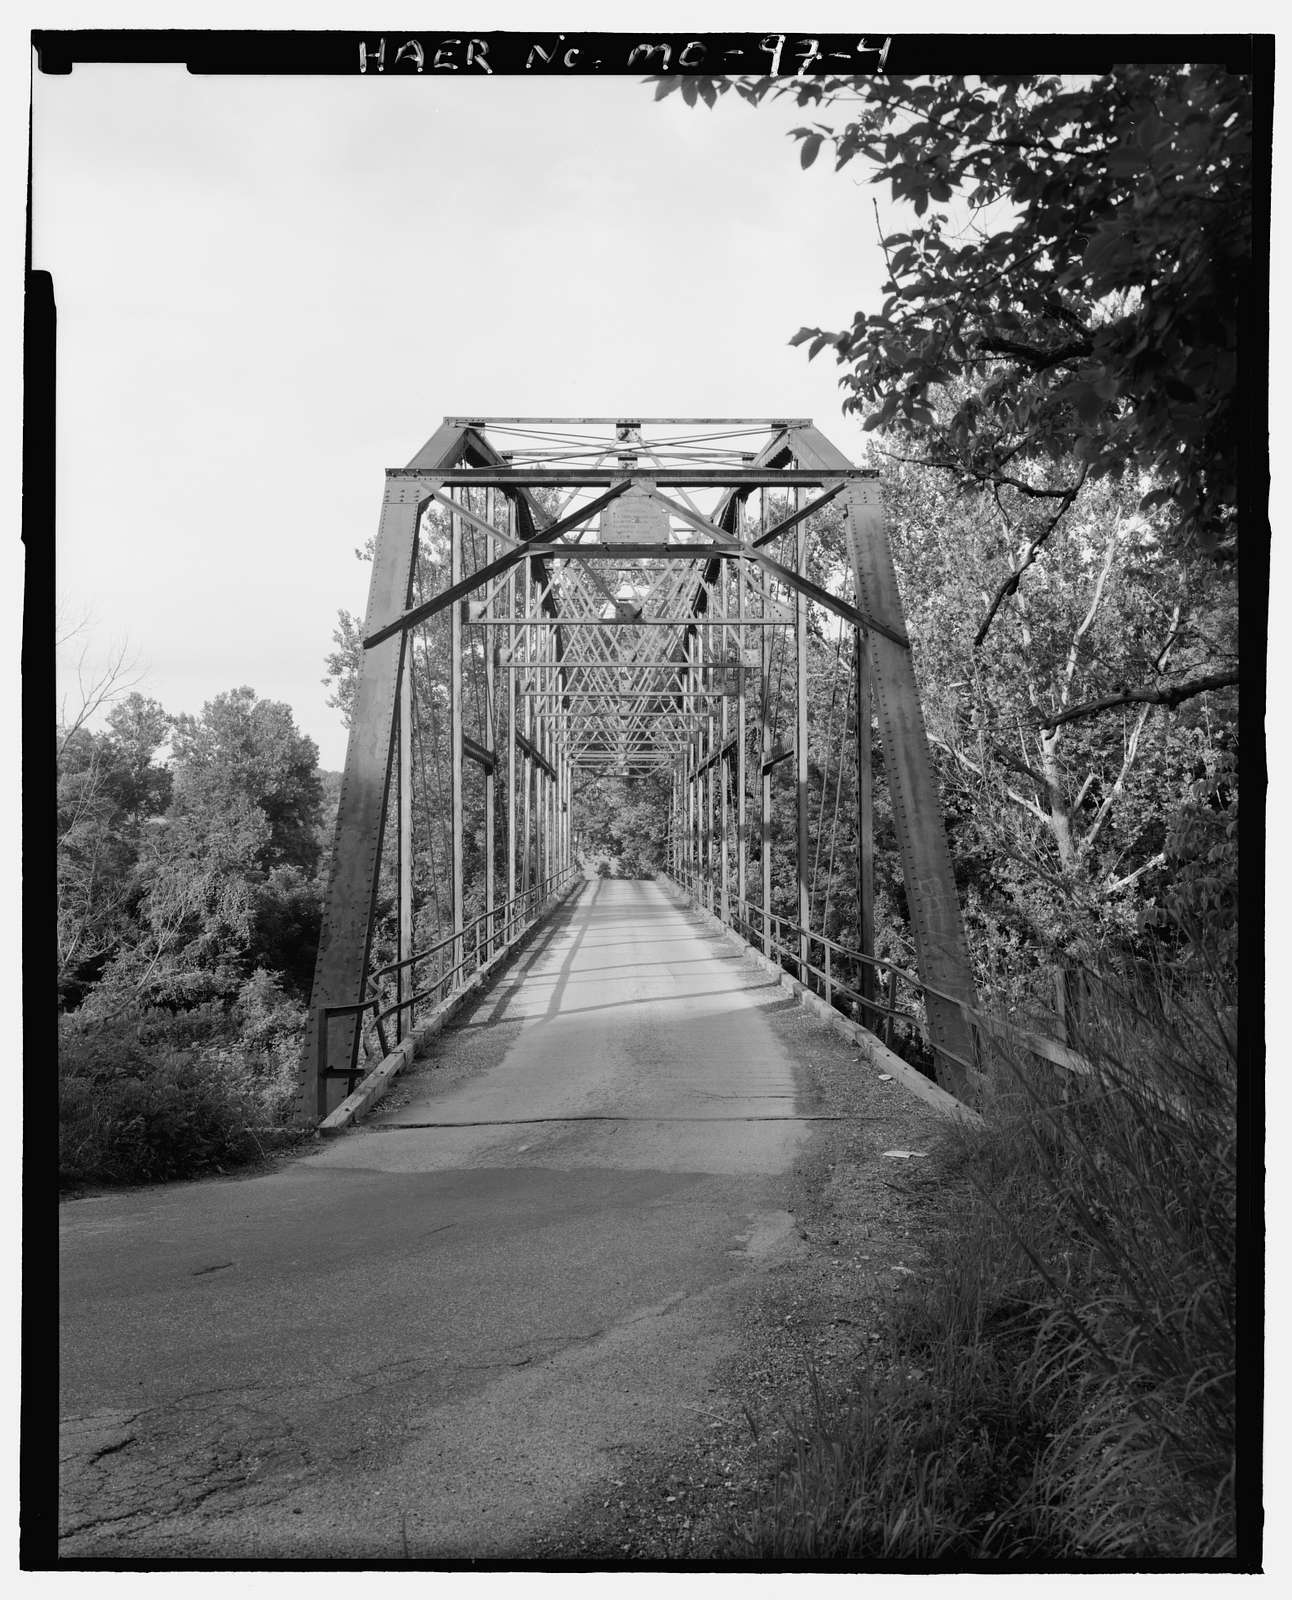 Hartmann's Ford Bridge, Spanning Bourbeuse River on North Bend Road, Union, Franklin County, MO